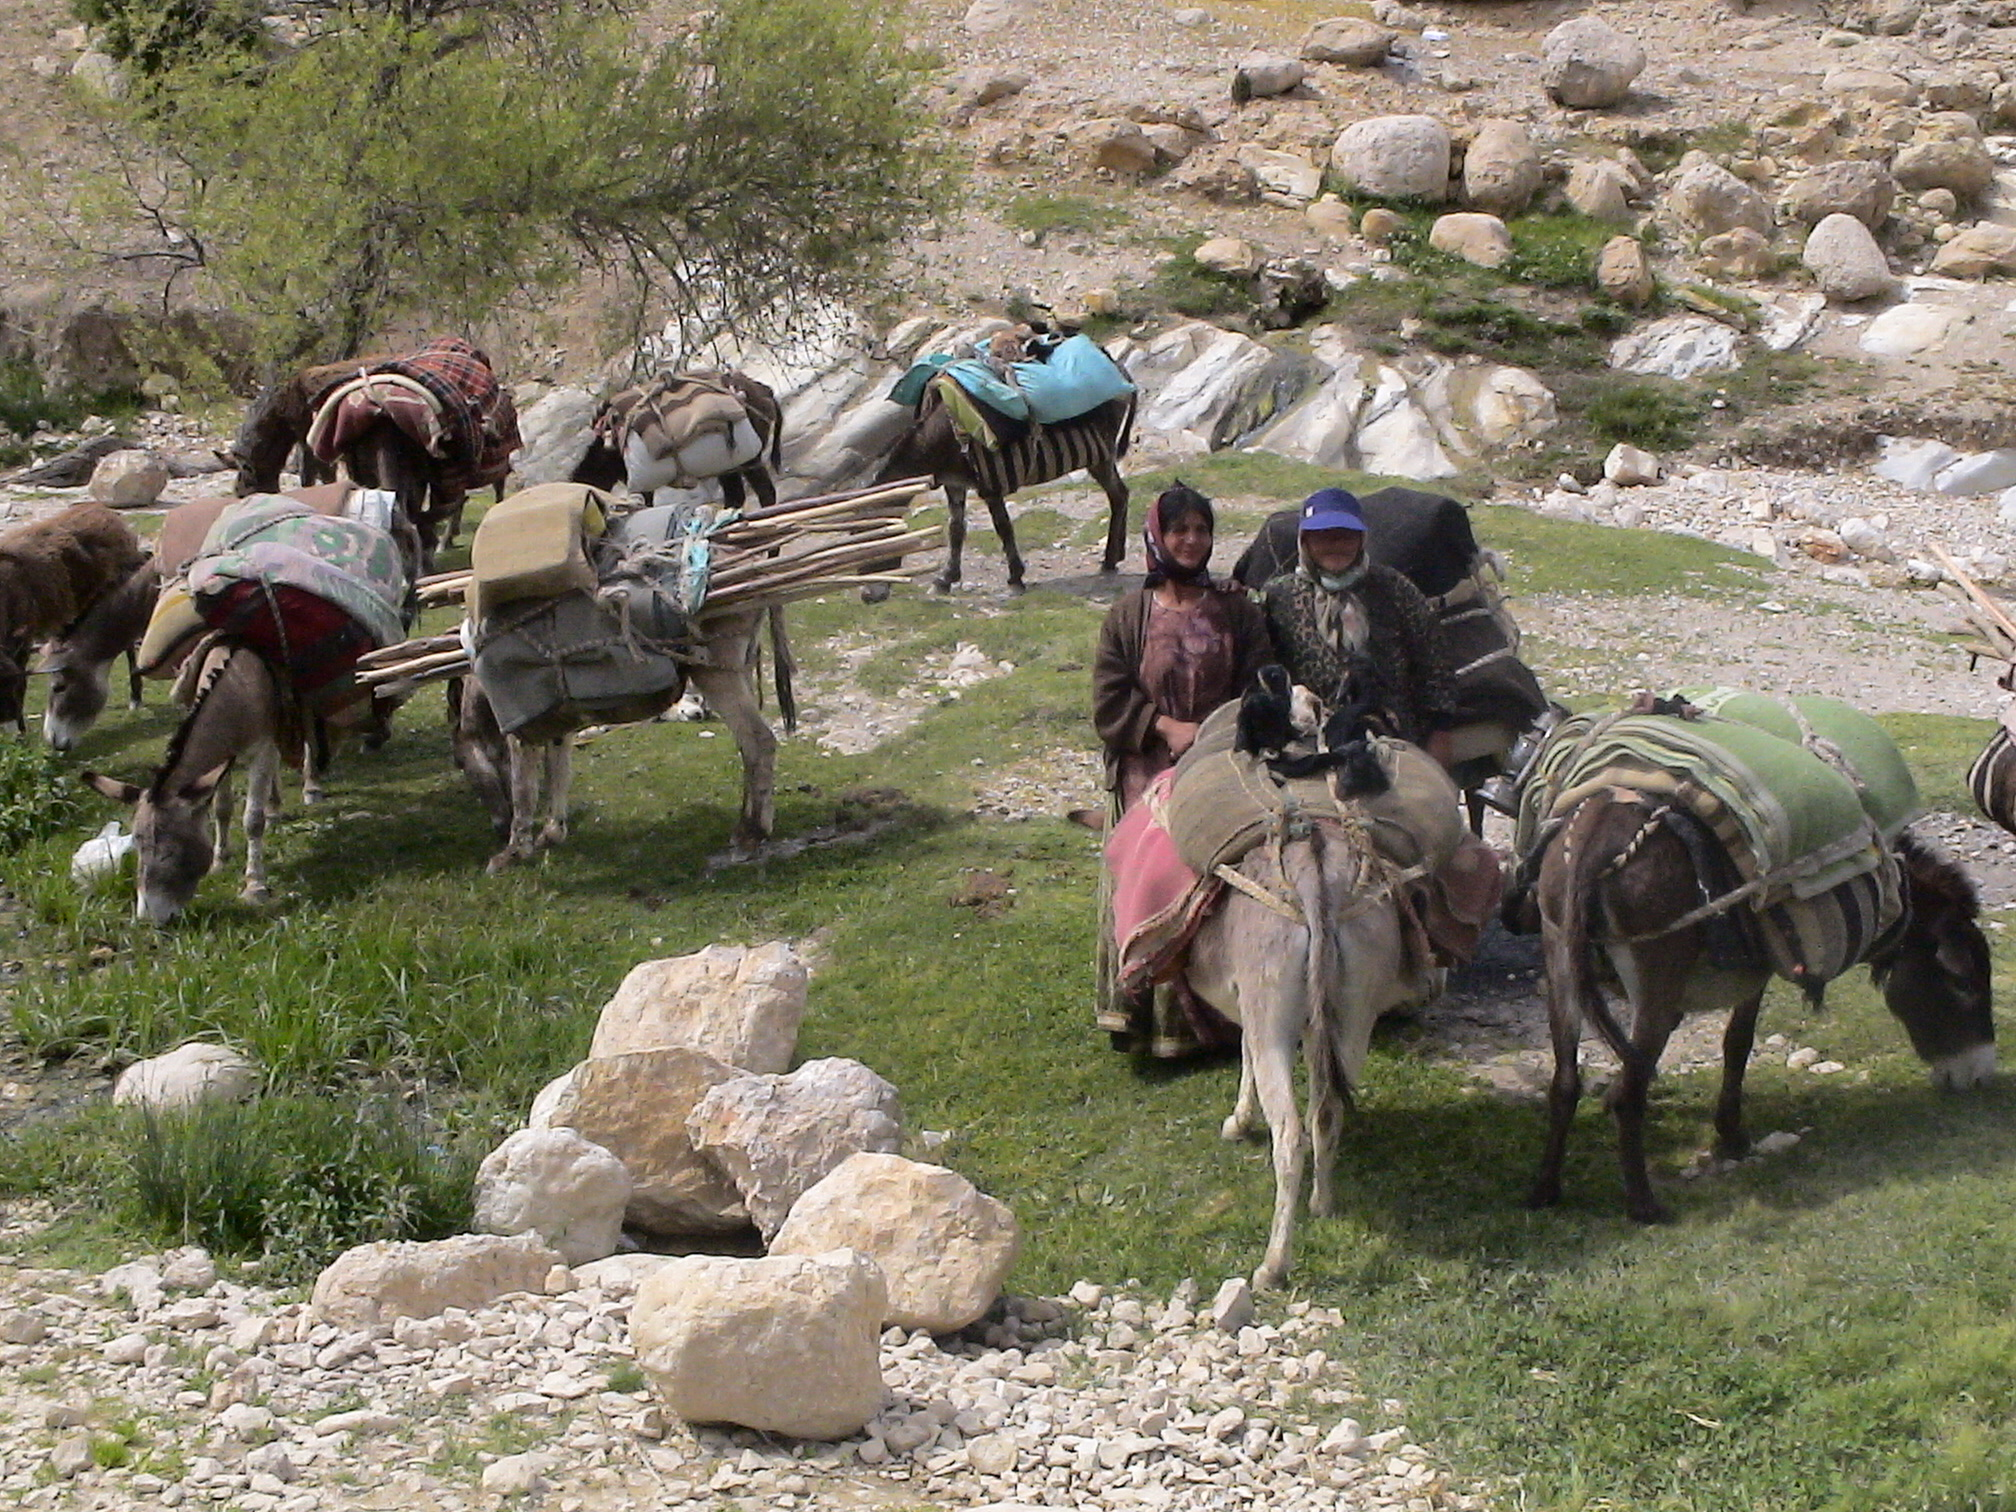 Nomadic pastoralists in Uran